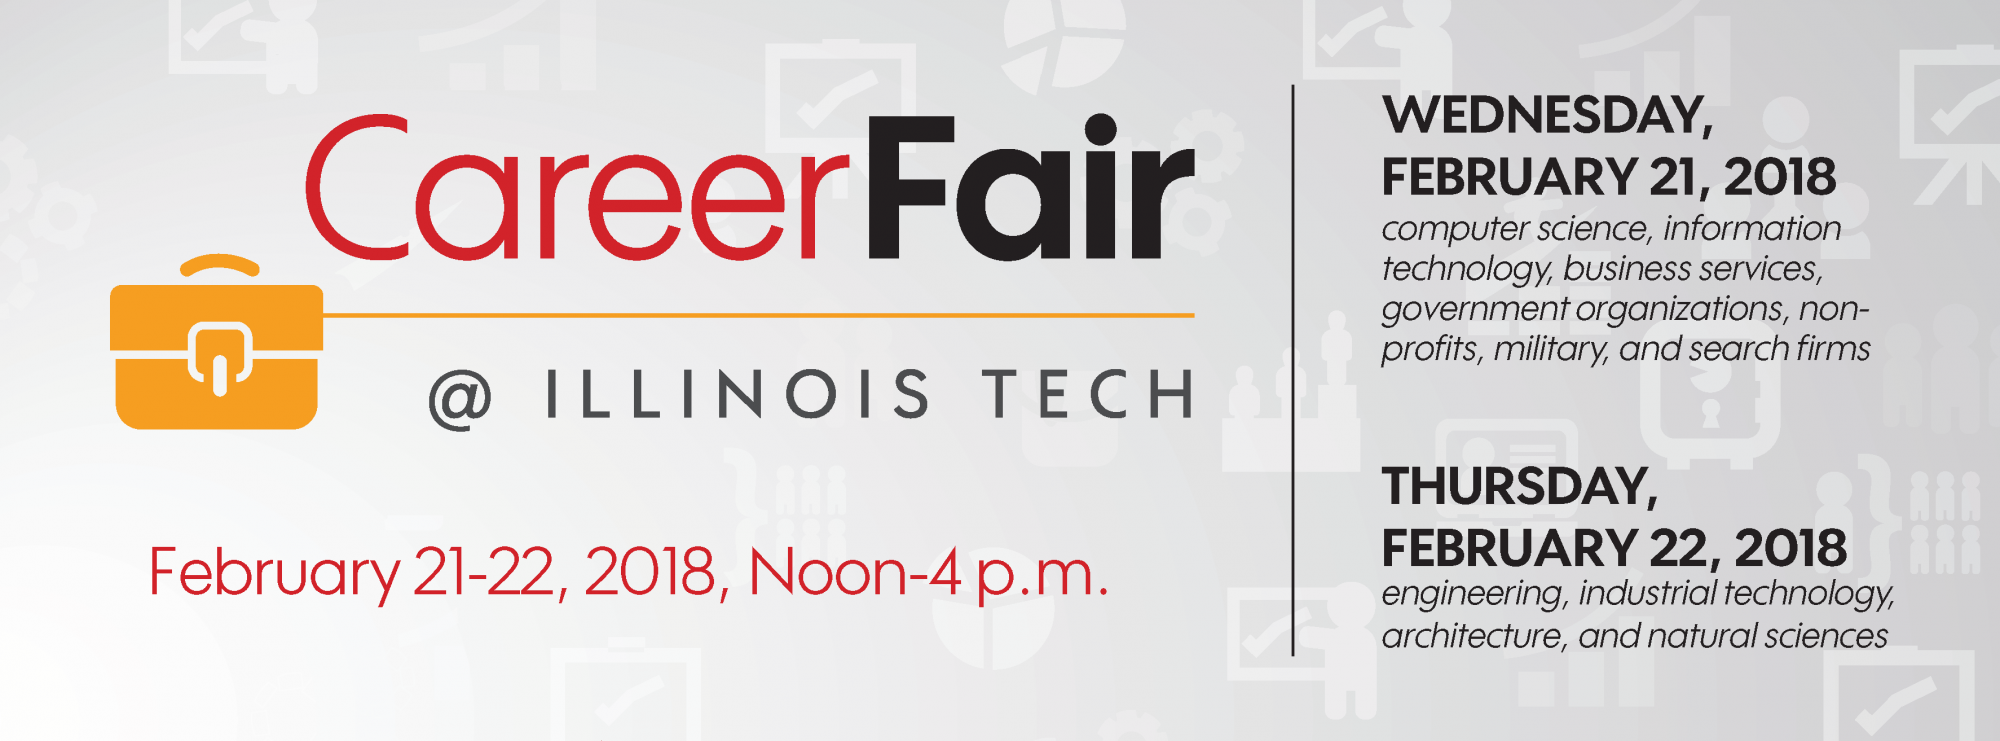 our campus wide career fairs are held each semester and are two days separated by general industry groupings to allow for more companies to attend and - Computer Science Resume Iit